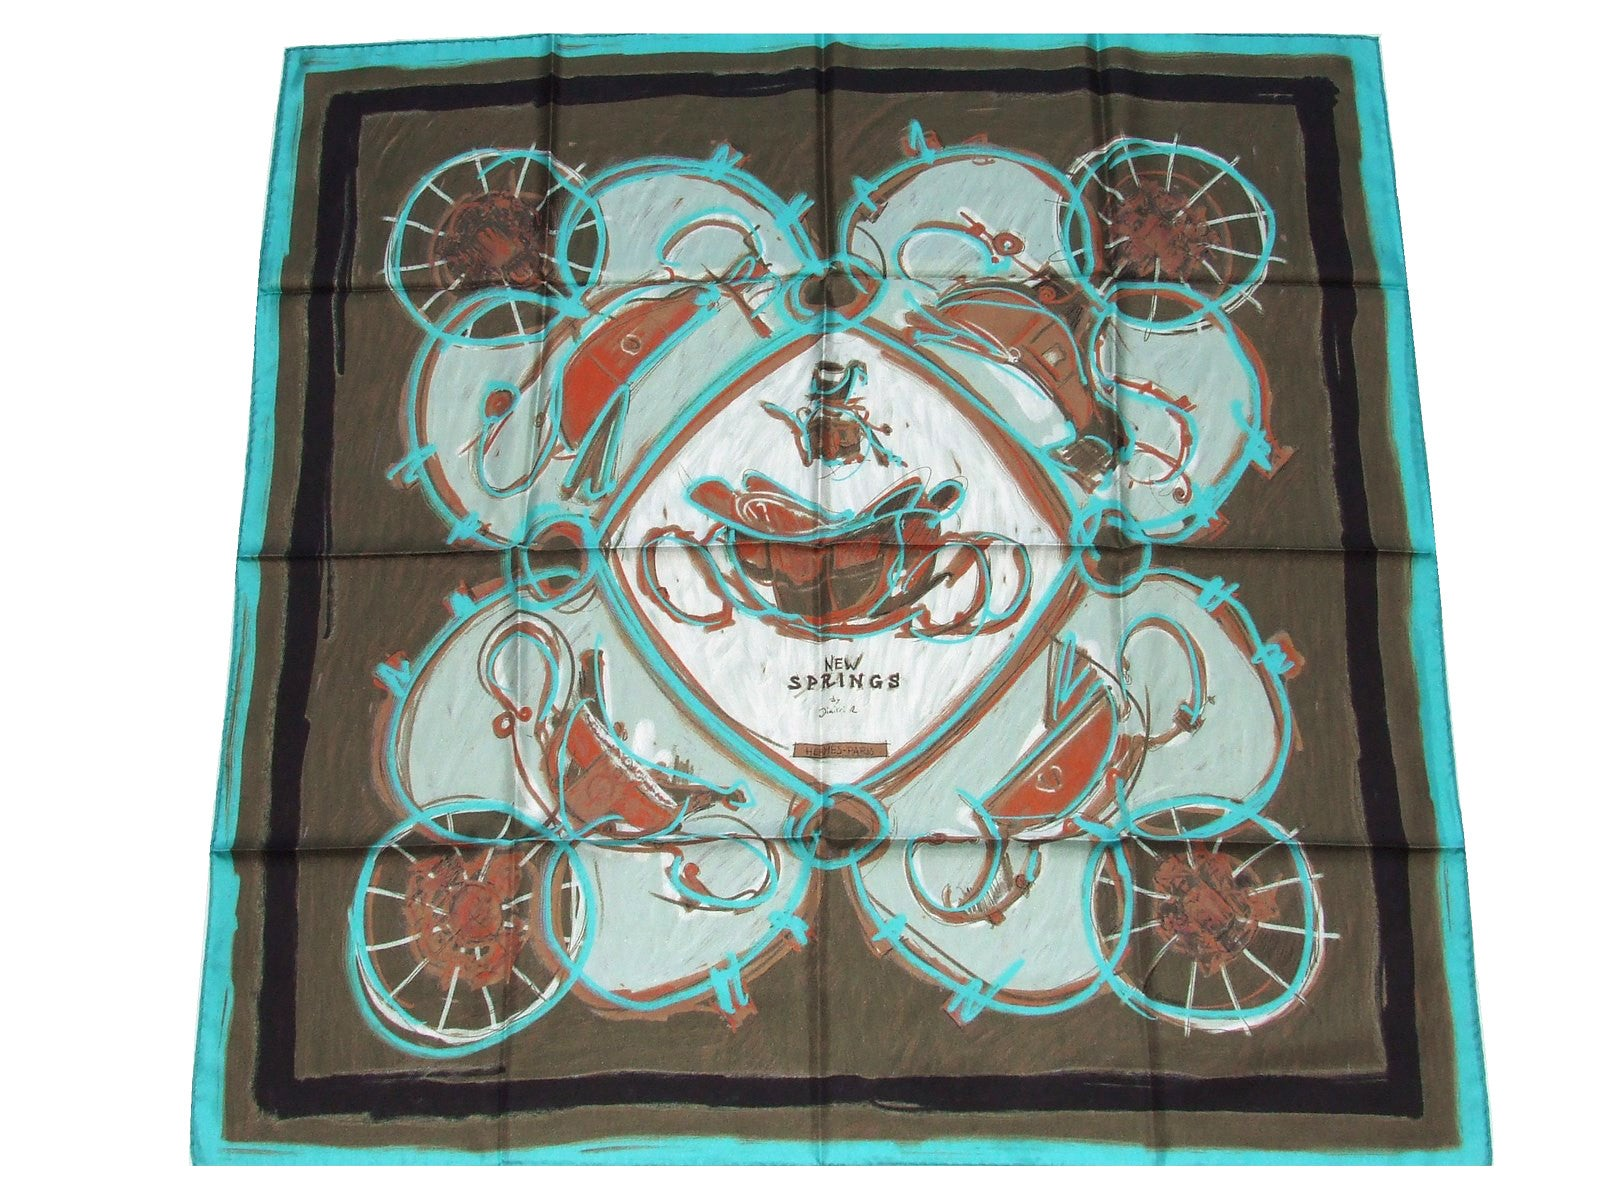 0a9d8acdd76a4 Hermes Silk Scarf New Springs Rybaltchenko 90 cm Matching Gigt Box For Sale  at 1stdibs